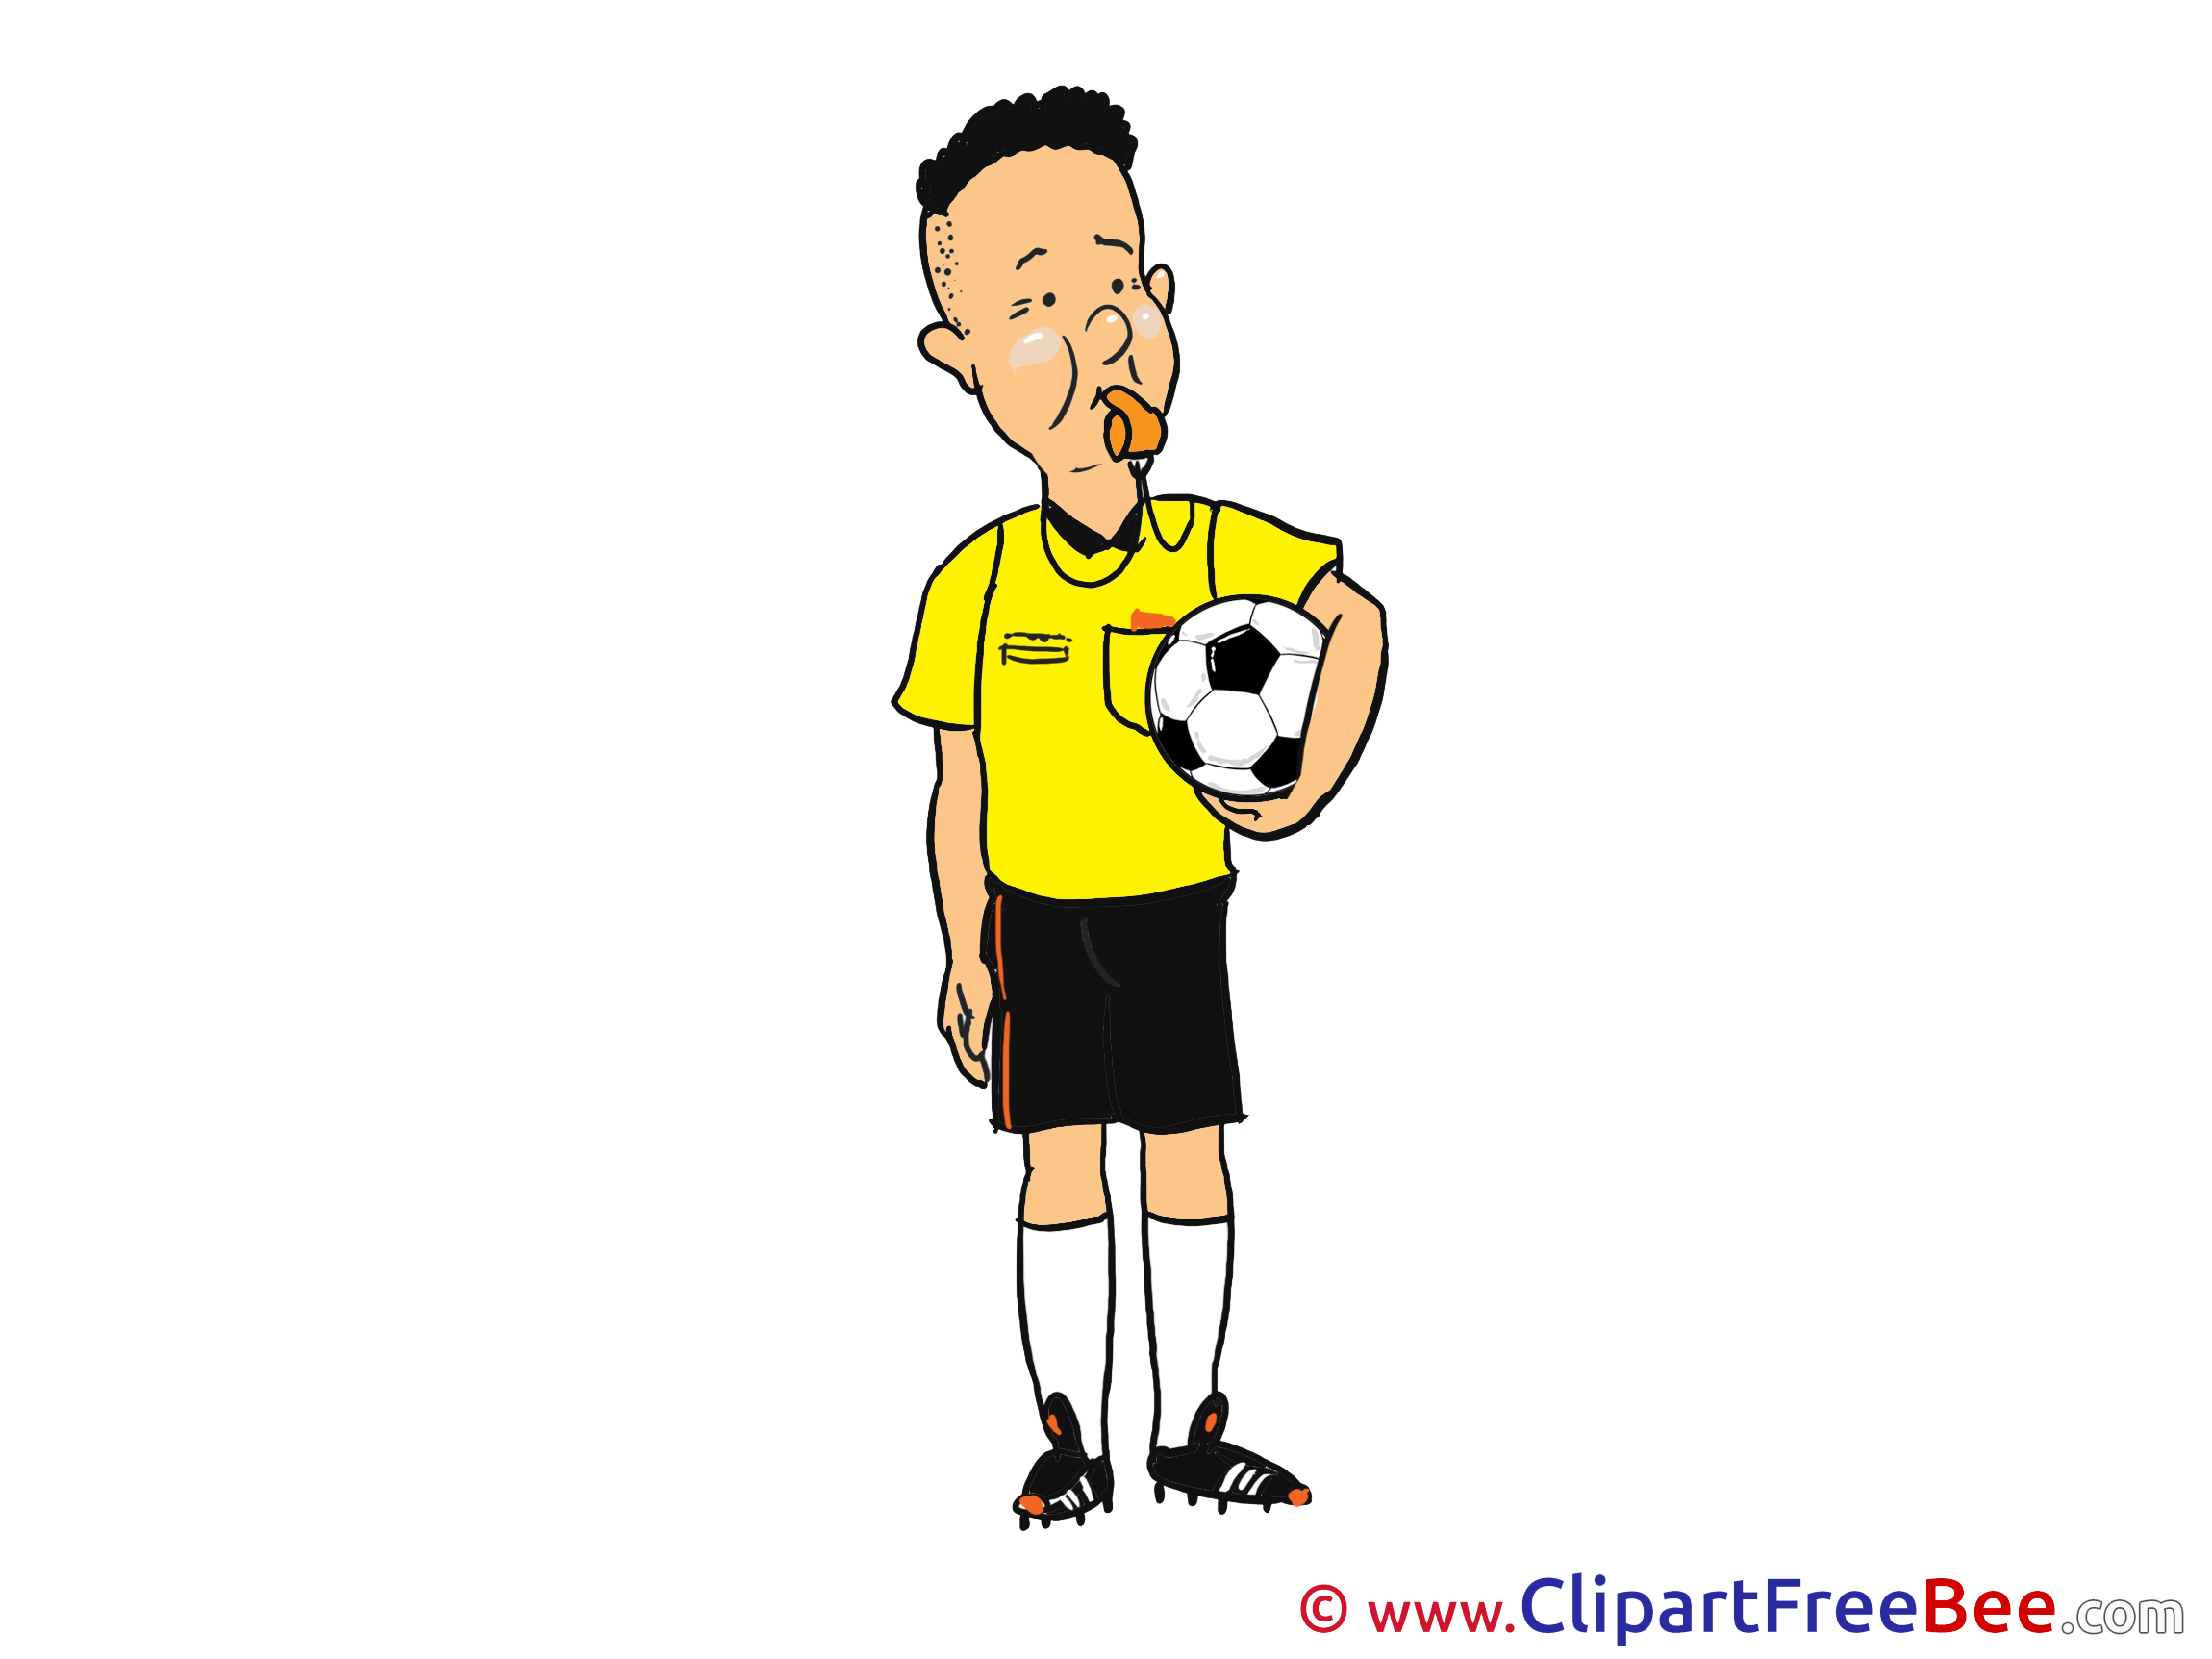 whistle_referee_download_clipart_football_cliparts_20161105_1385639303